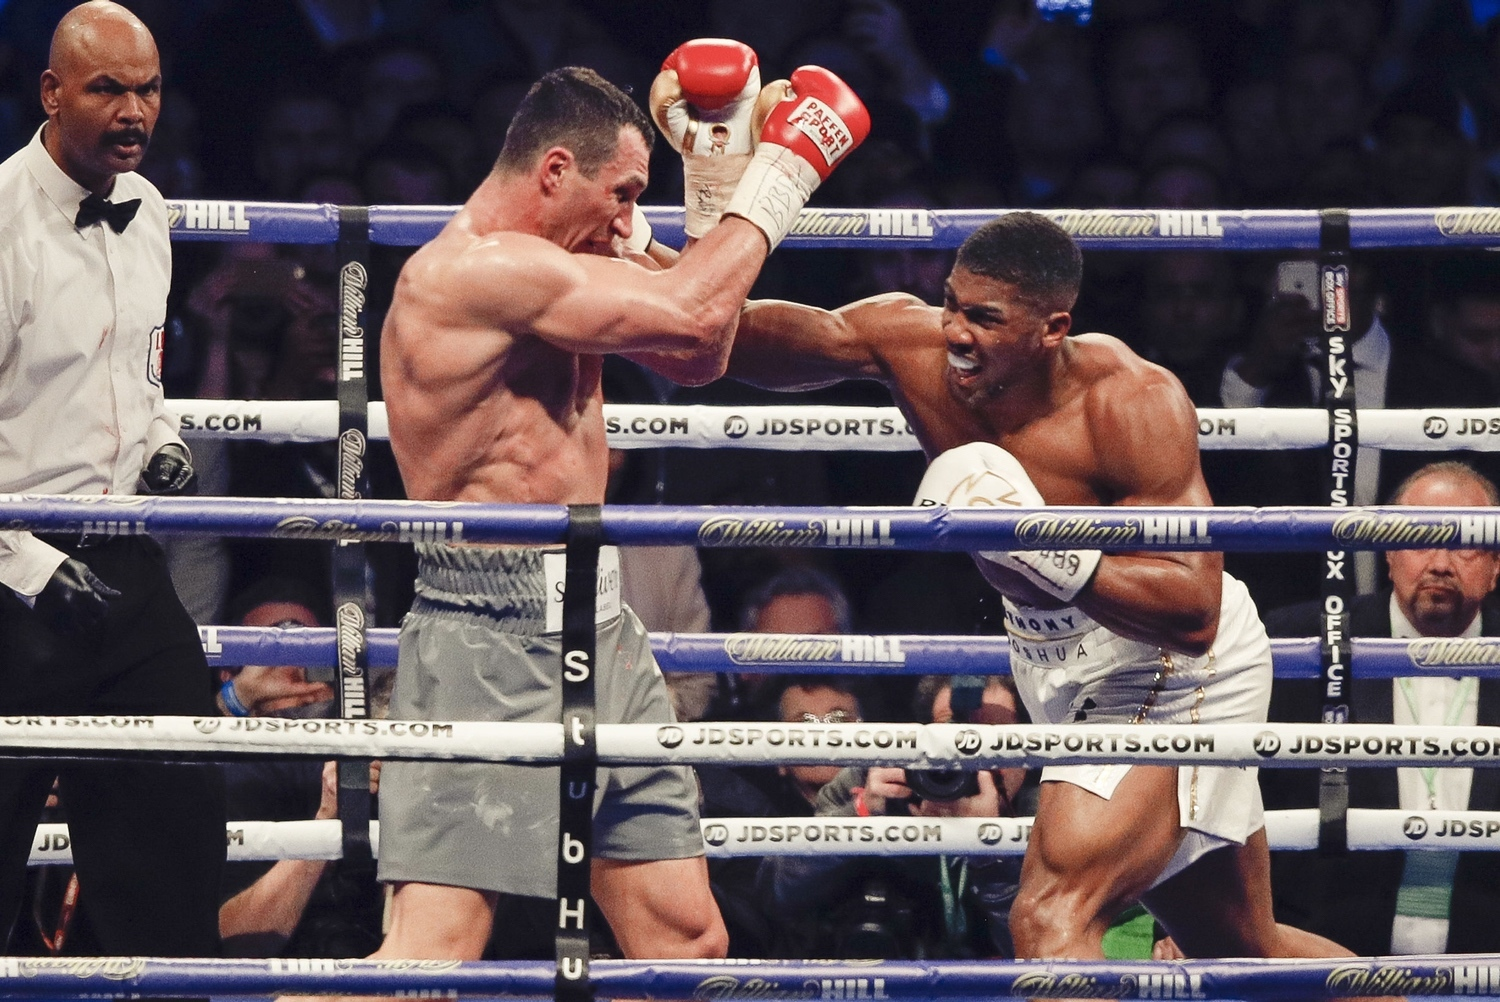 IBF grant exception for Joshua-Klitschko rematch